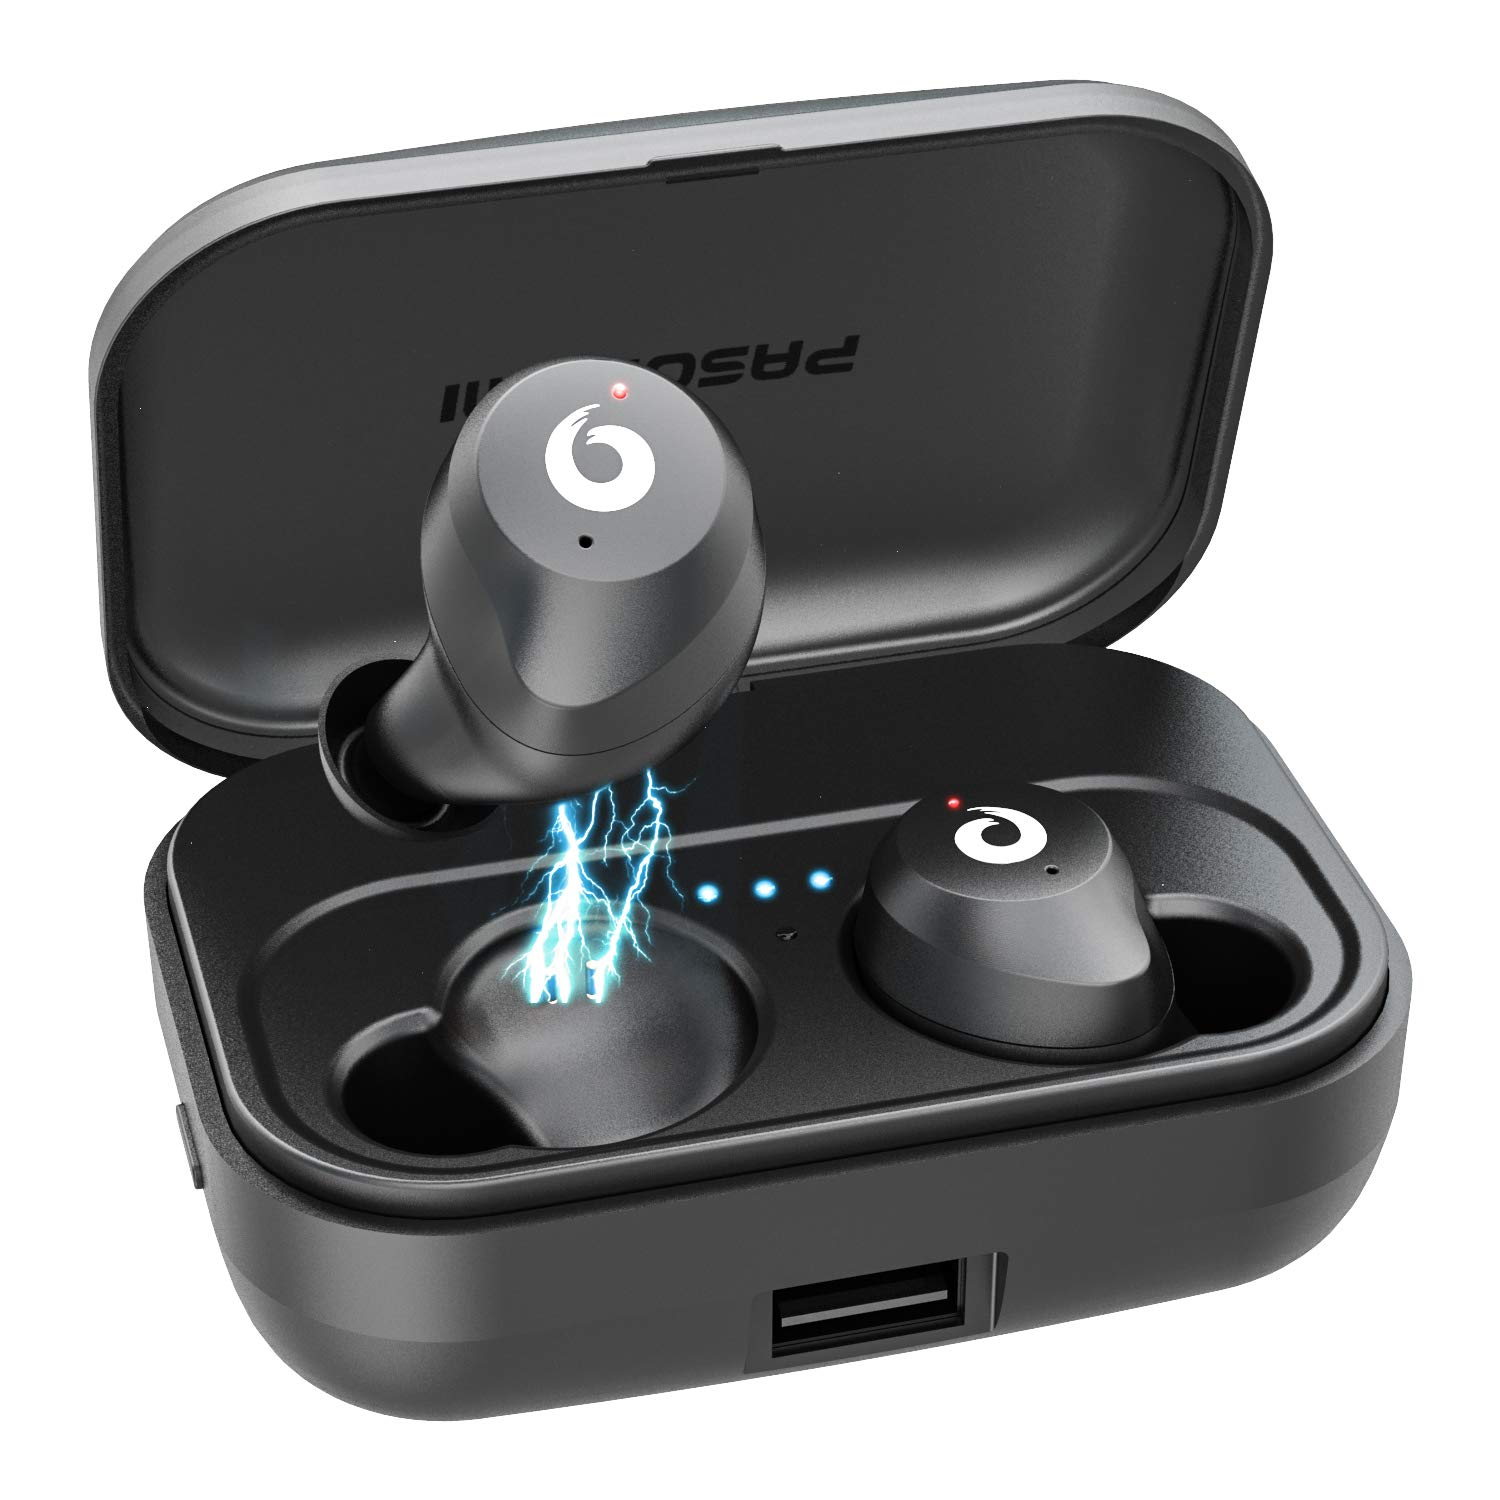 Wireless Earbuds TWS Bluetooth Earbuds Stereo Bluetooth 5.0 Headphones Sports IPX7 Waterproof Wireless Earphones with 2200mah Charging Case Box, Built-in Mic